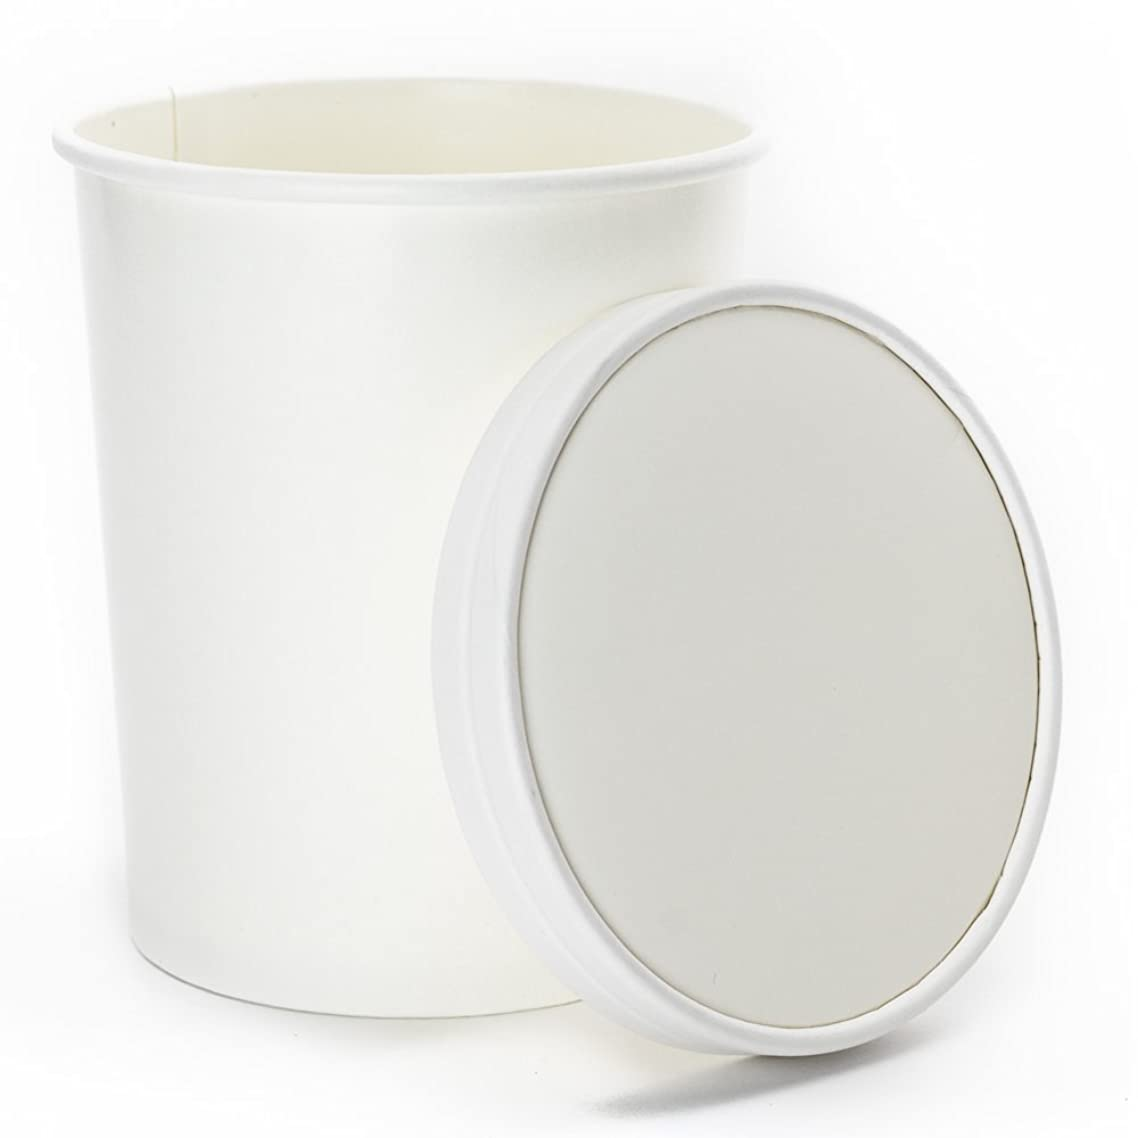 32 oz Freezer Containers And Lids - With Non-vented Lids to Prevent Freezer Burn - Durable Heavy Duty Quart Ice Cream Containers! Fast Shipping - Frozen Dessert Supplies - 25 Count